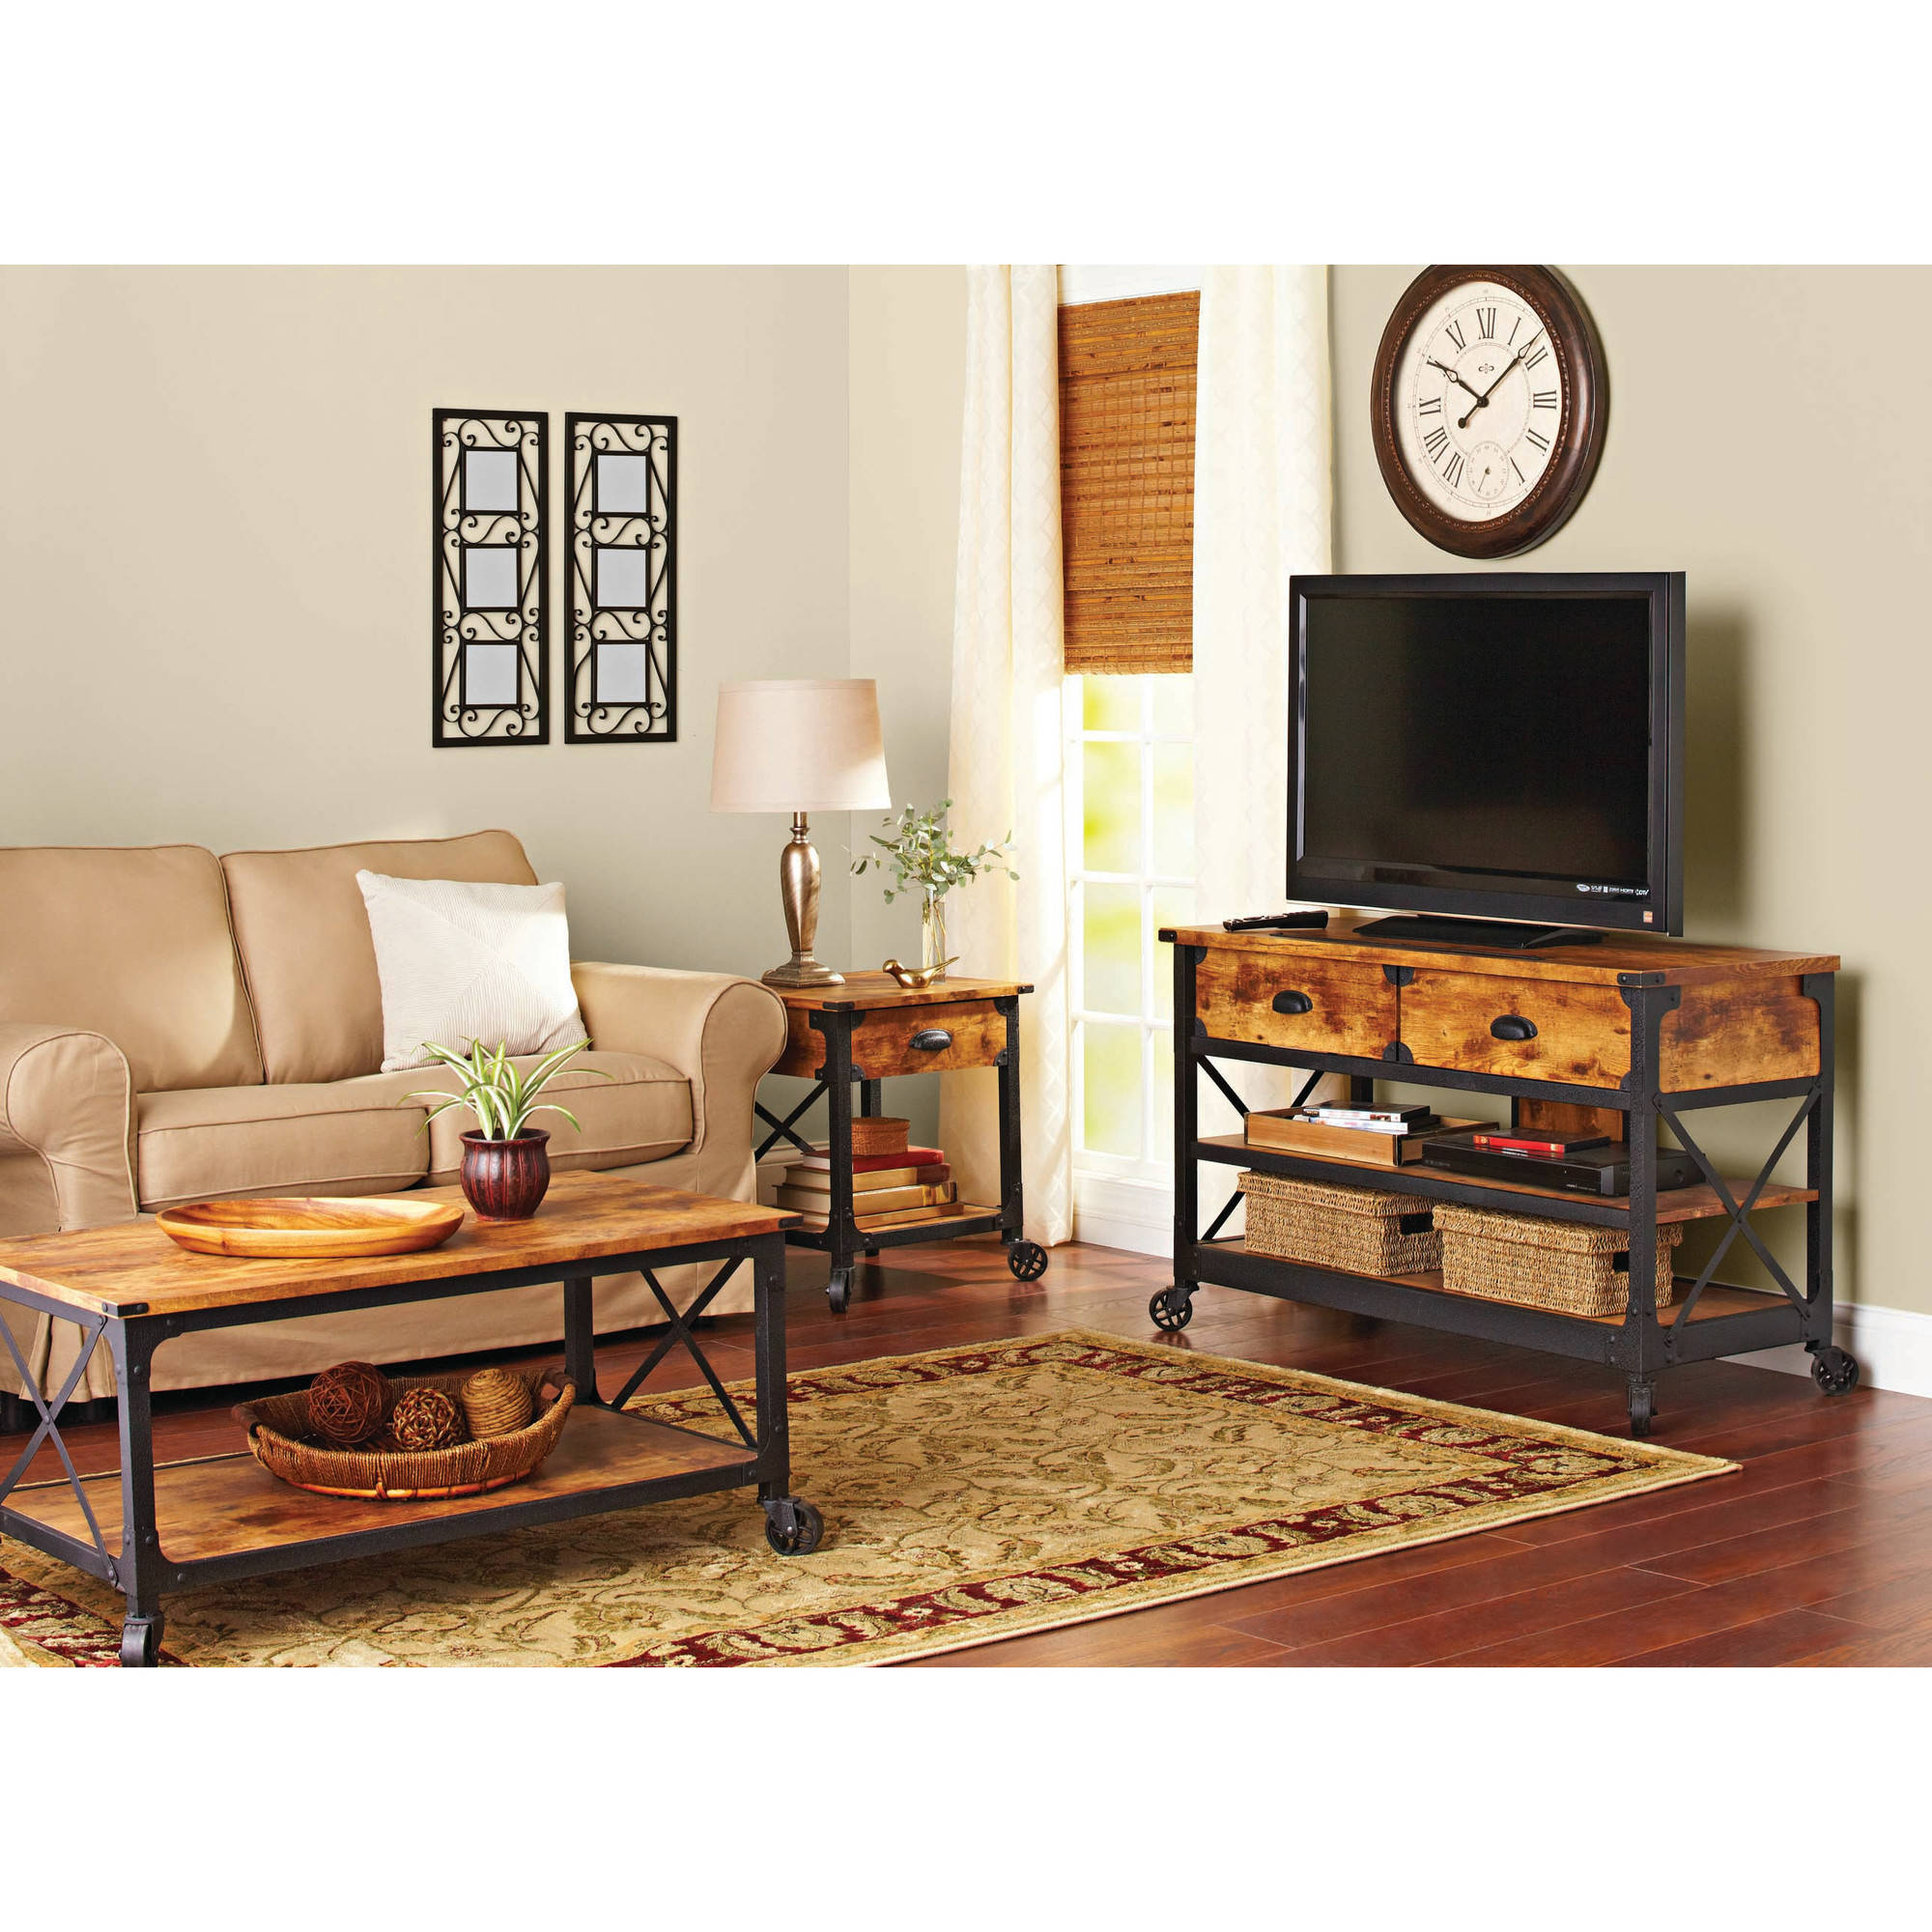 Better homes and gardens rustic country antiqued blackpine panel better homes and gardens rustic country antiqued blackpine panel tv stand for tvs up to 52 walmart geotapseo Gallery